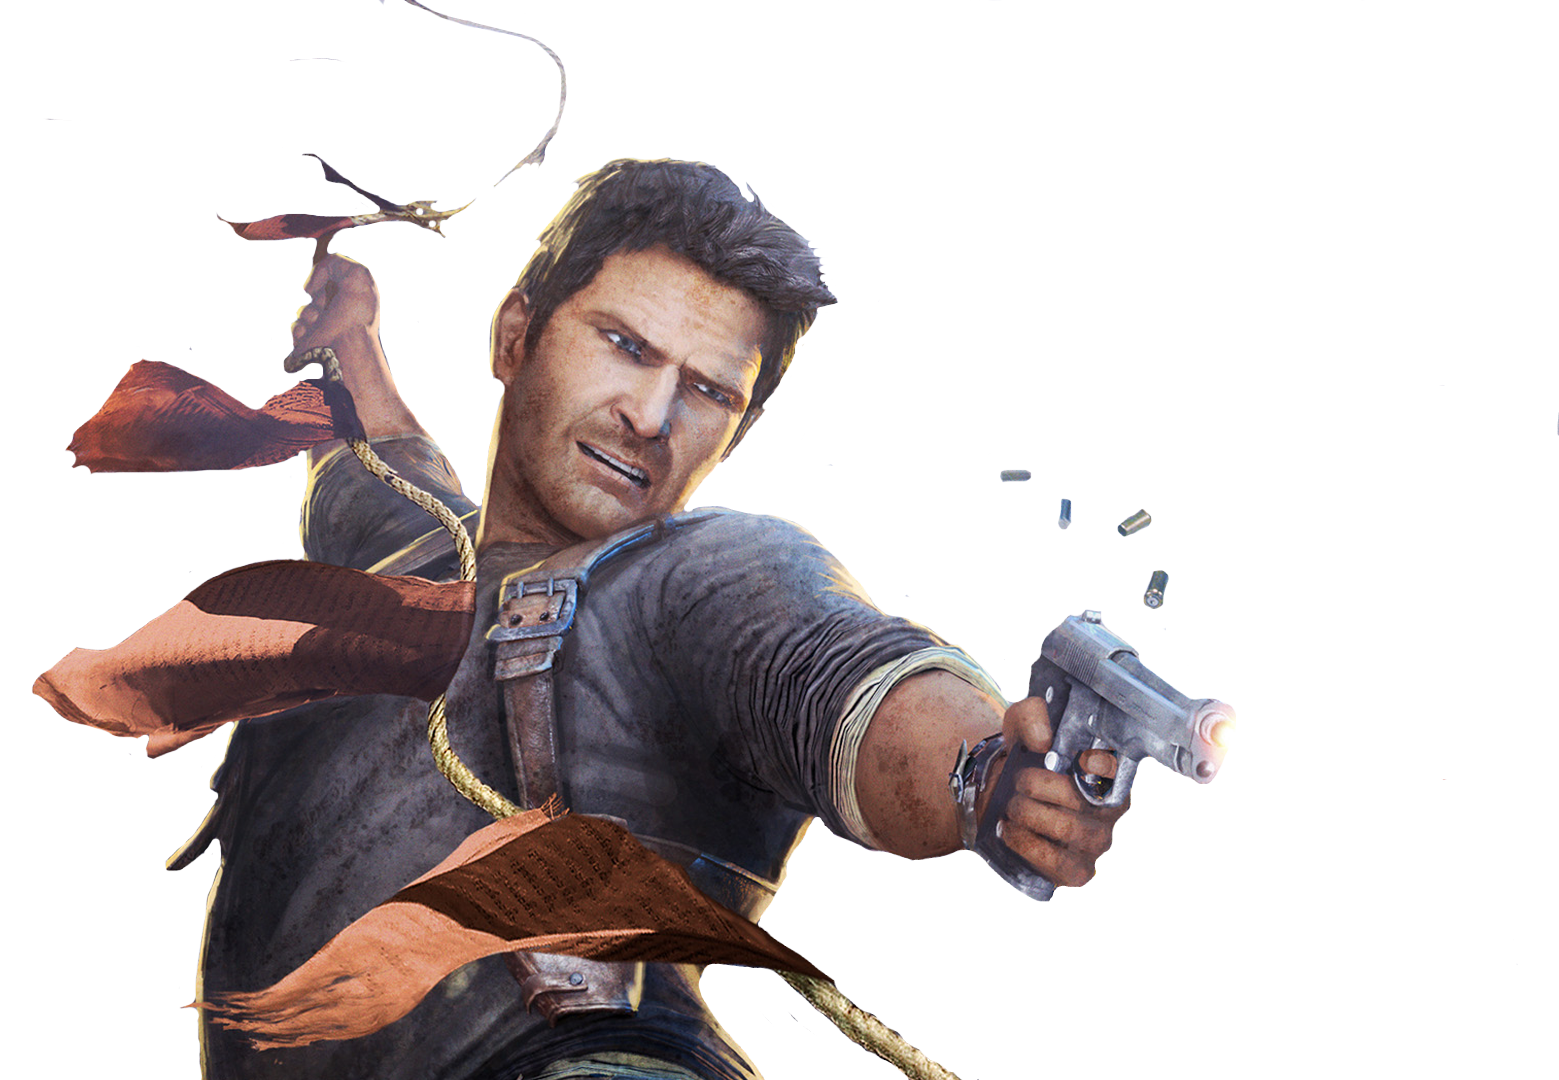 Nathan Drake Uncharted PNG Image Background.